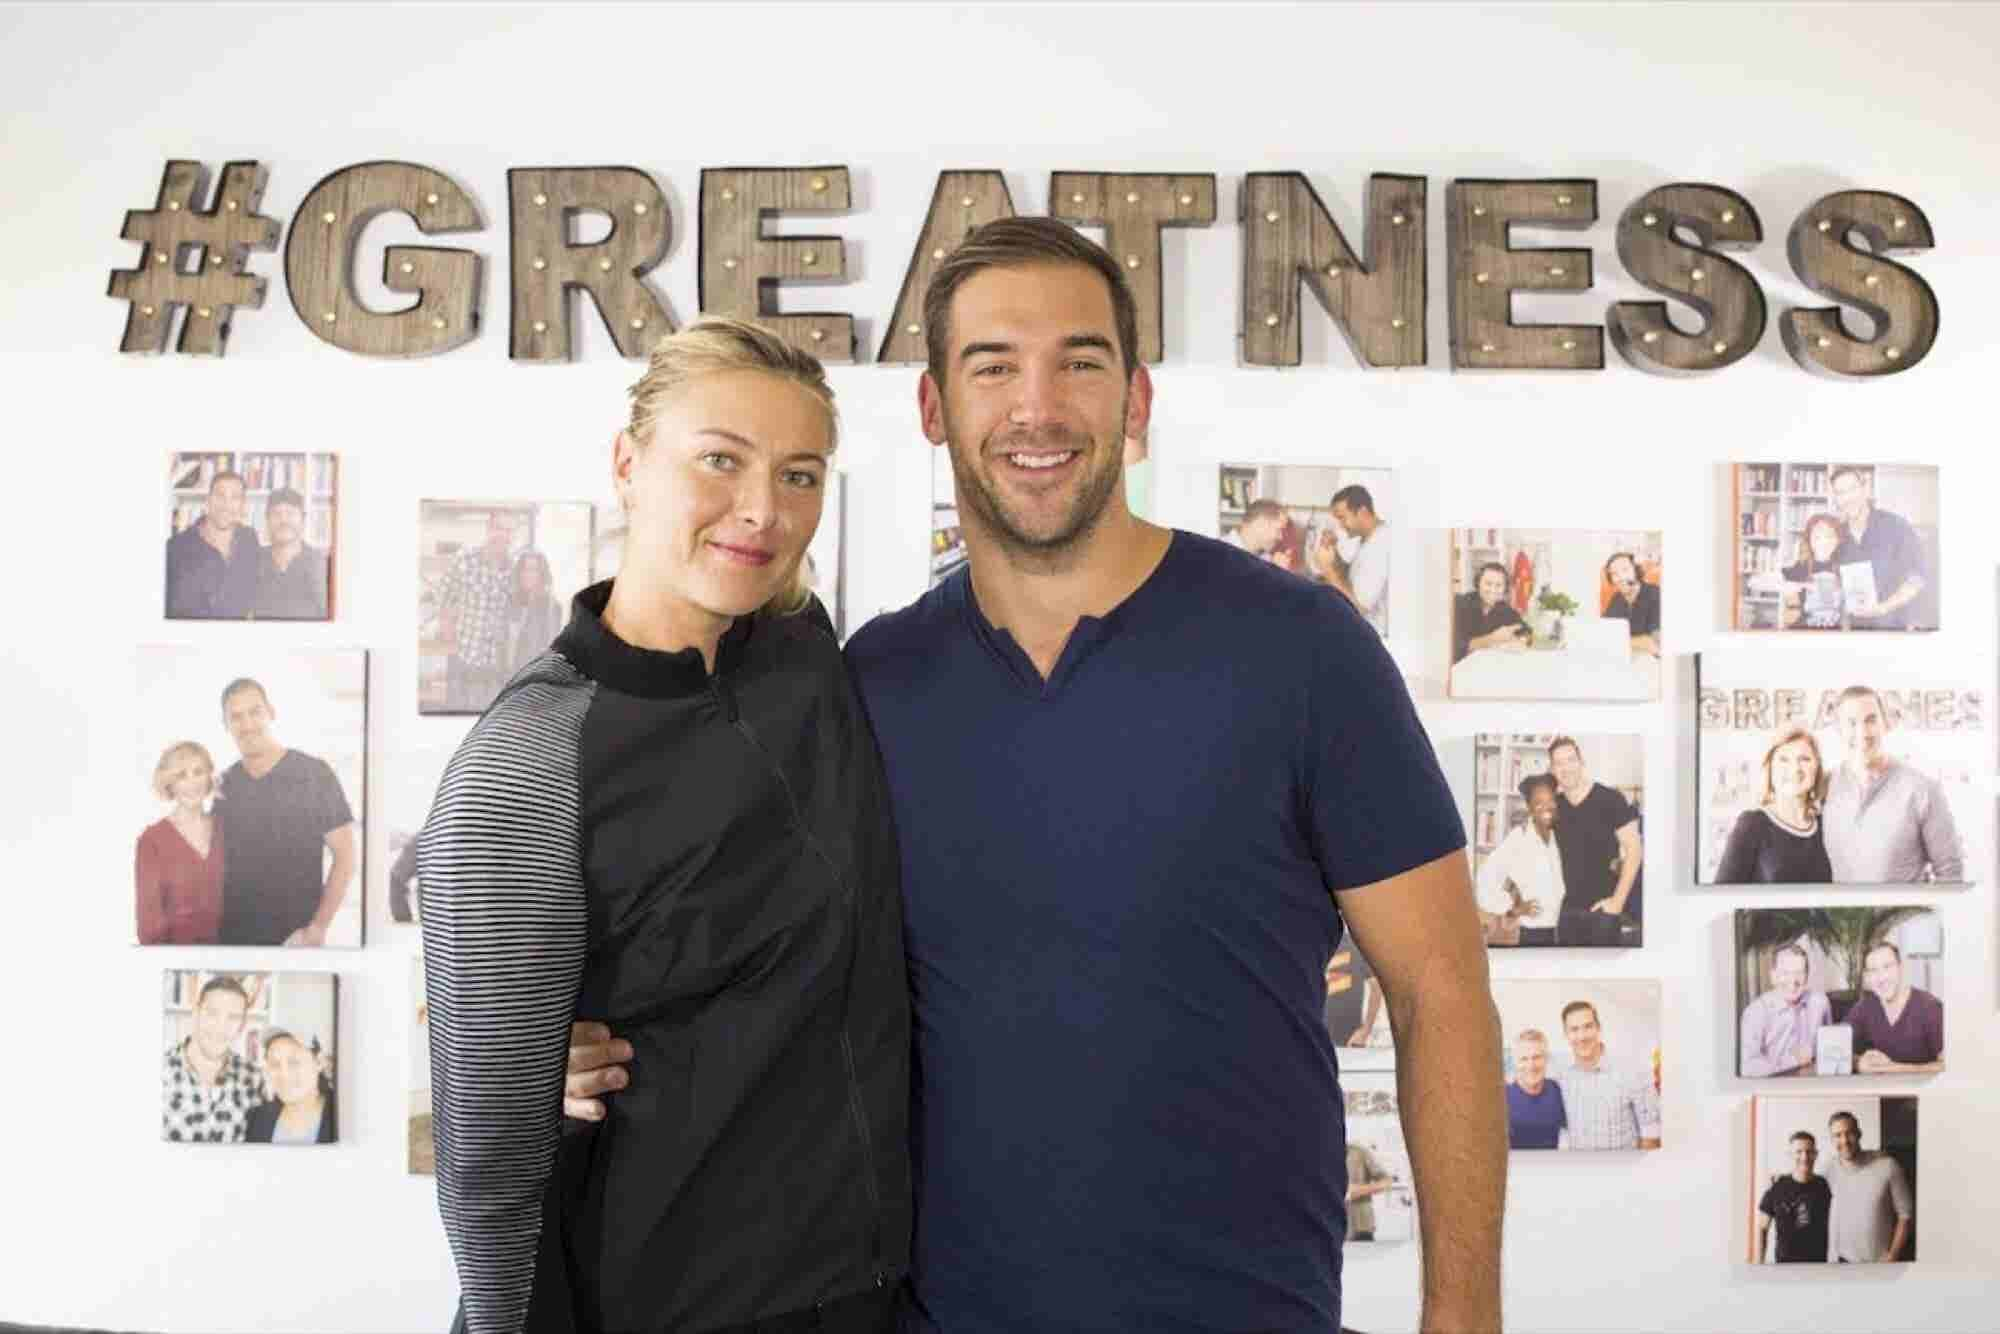 Maria Sharapova on Being a Champion On and Off the Court